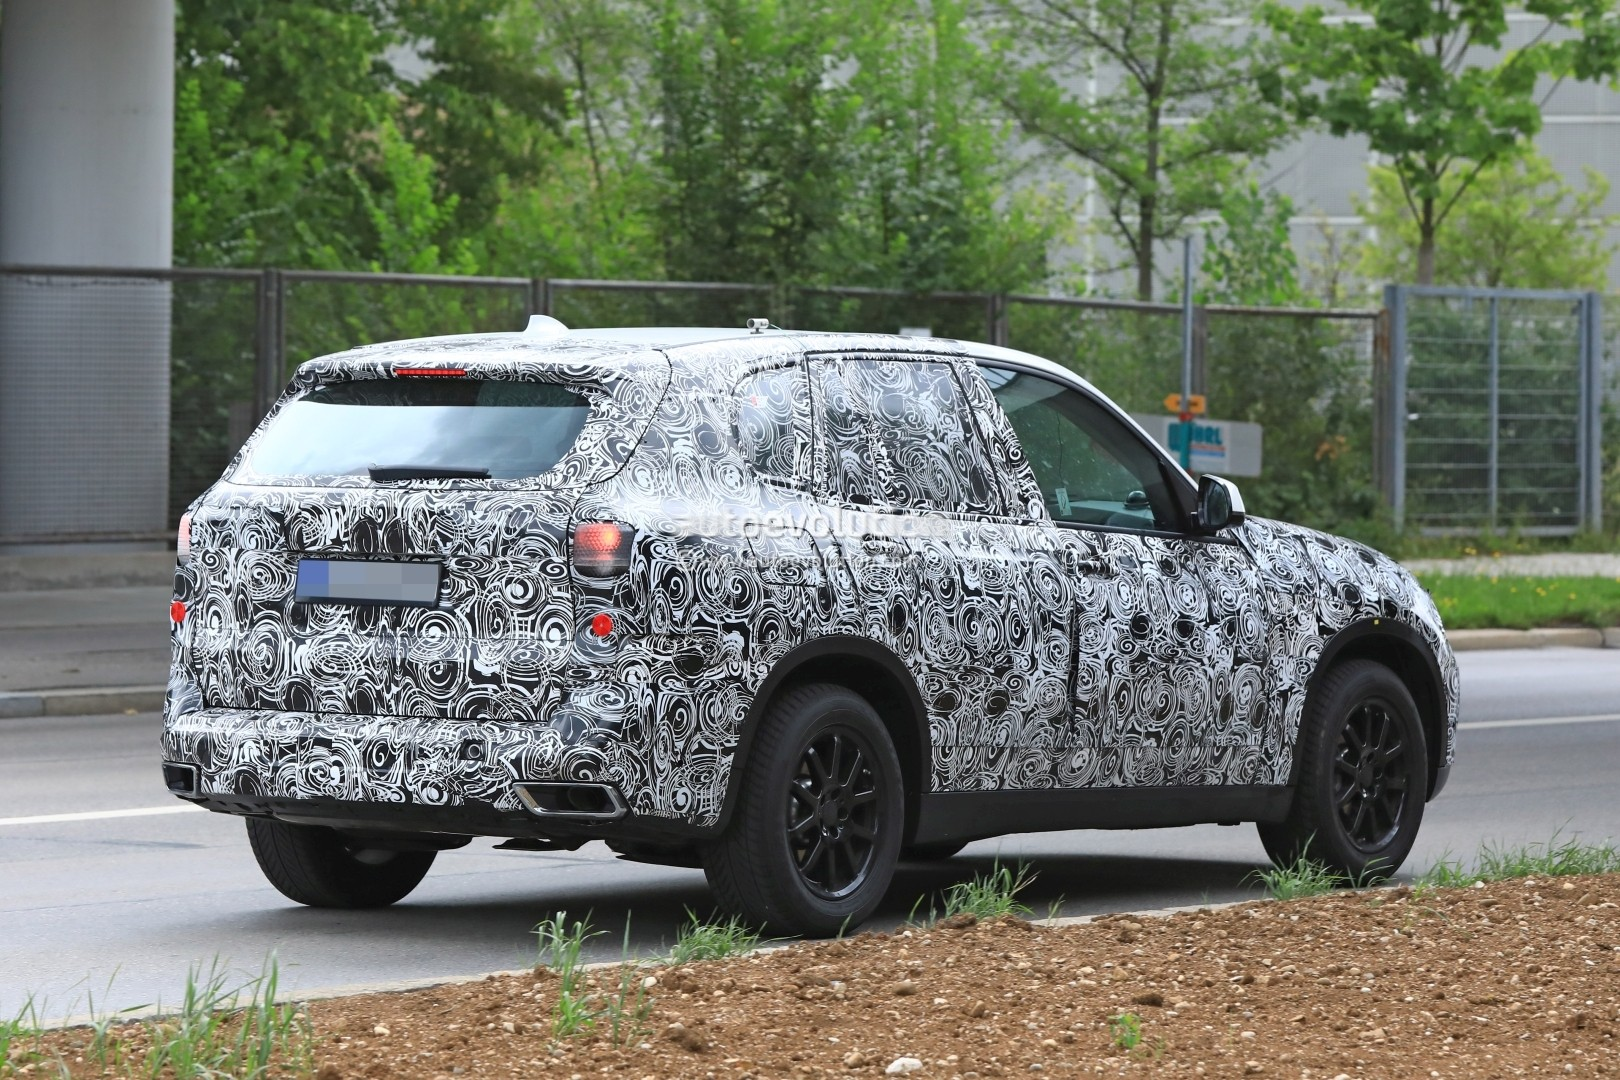 2019-bmw-x5-spied-prototype-reveals-new-angular-design-front-air-intakes_8